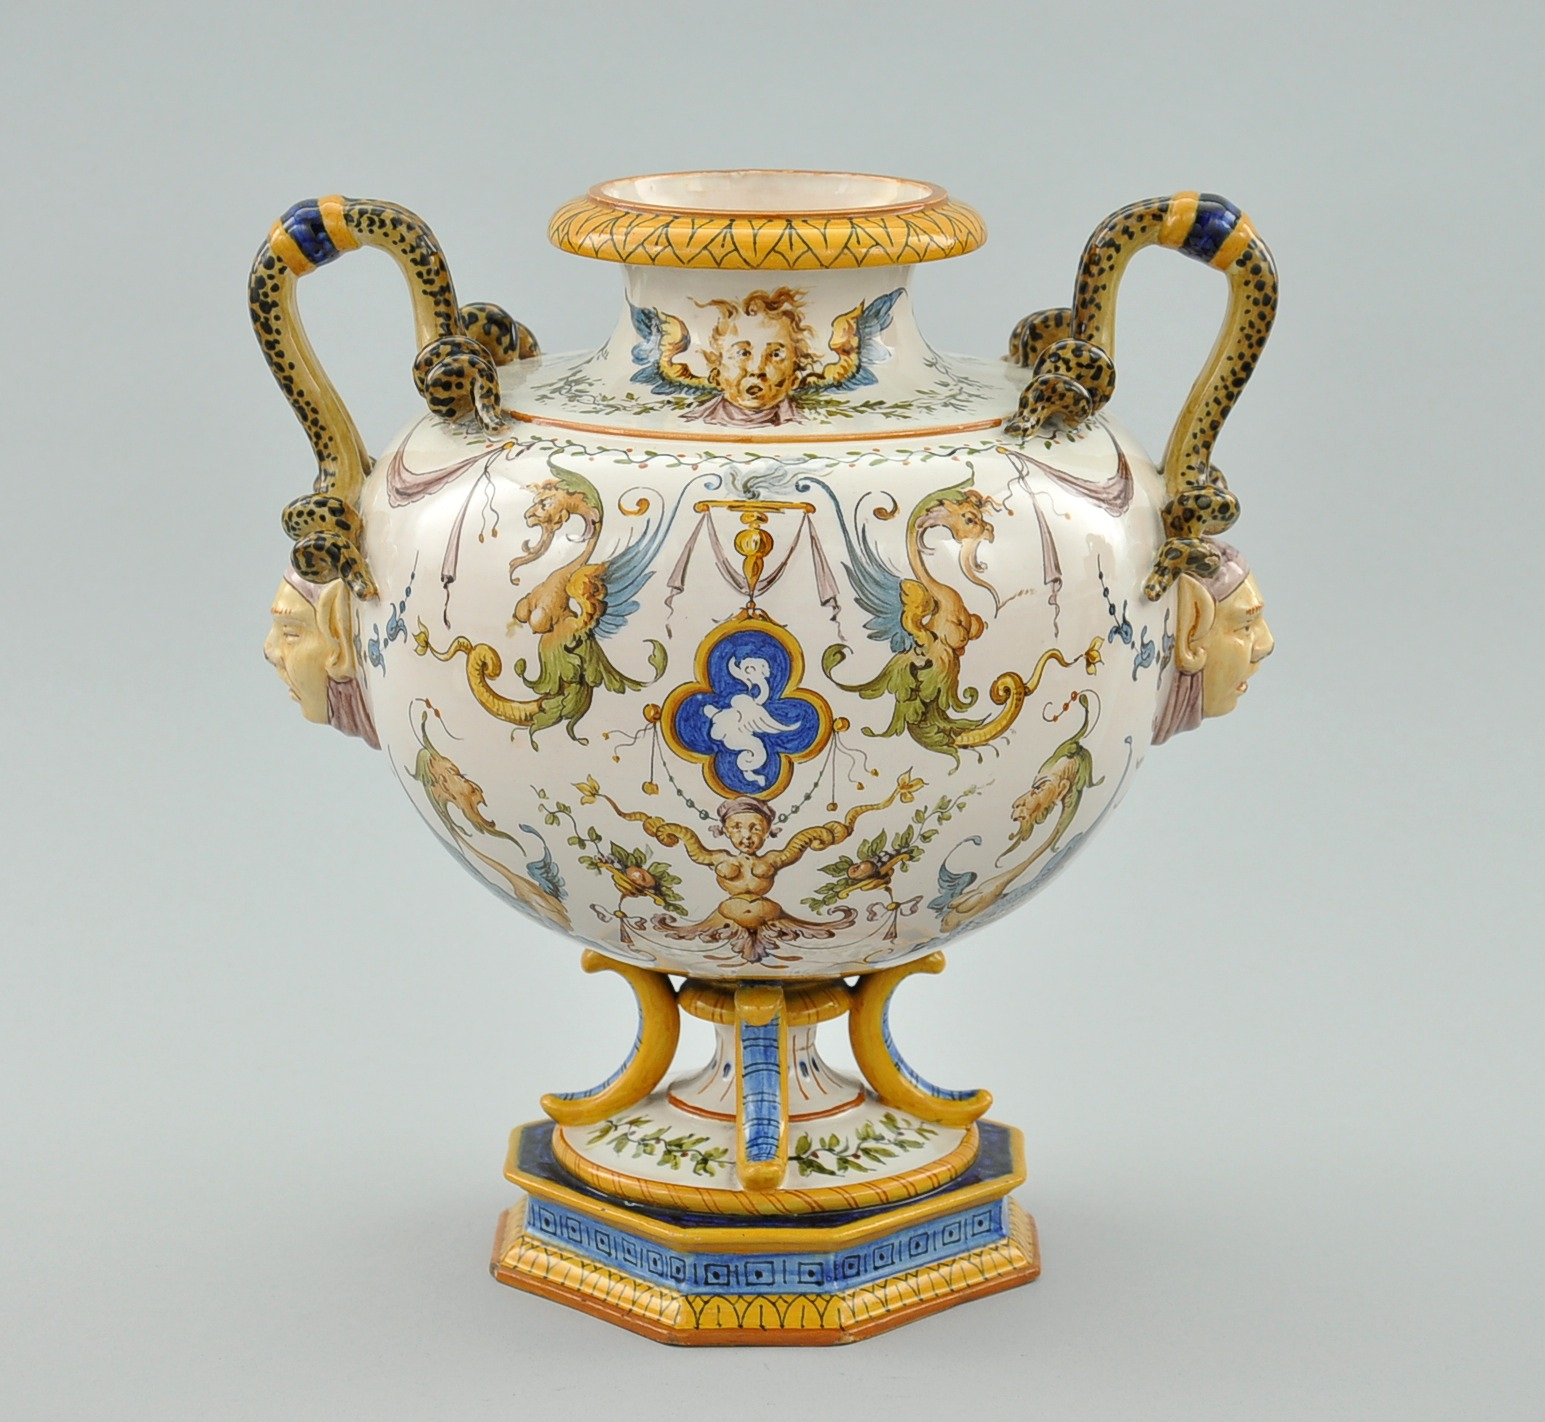 A clement massier golfe juan lustre vase 052210 sold 6095 ginori italian majolica ceramic double handle serpent vase ca 19th century reviewsmspy